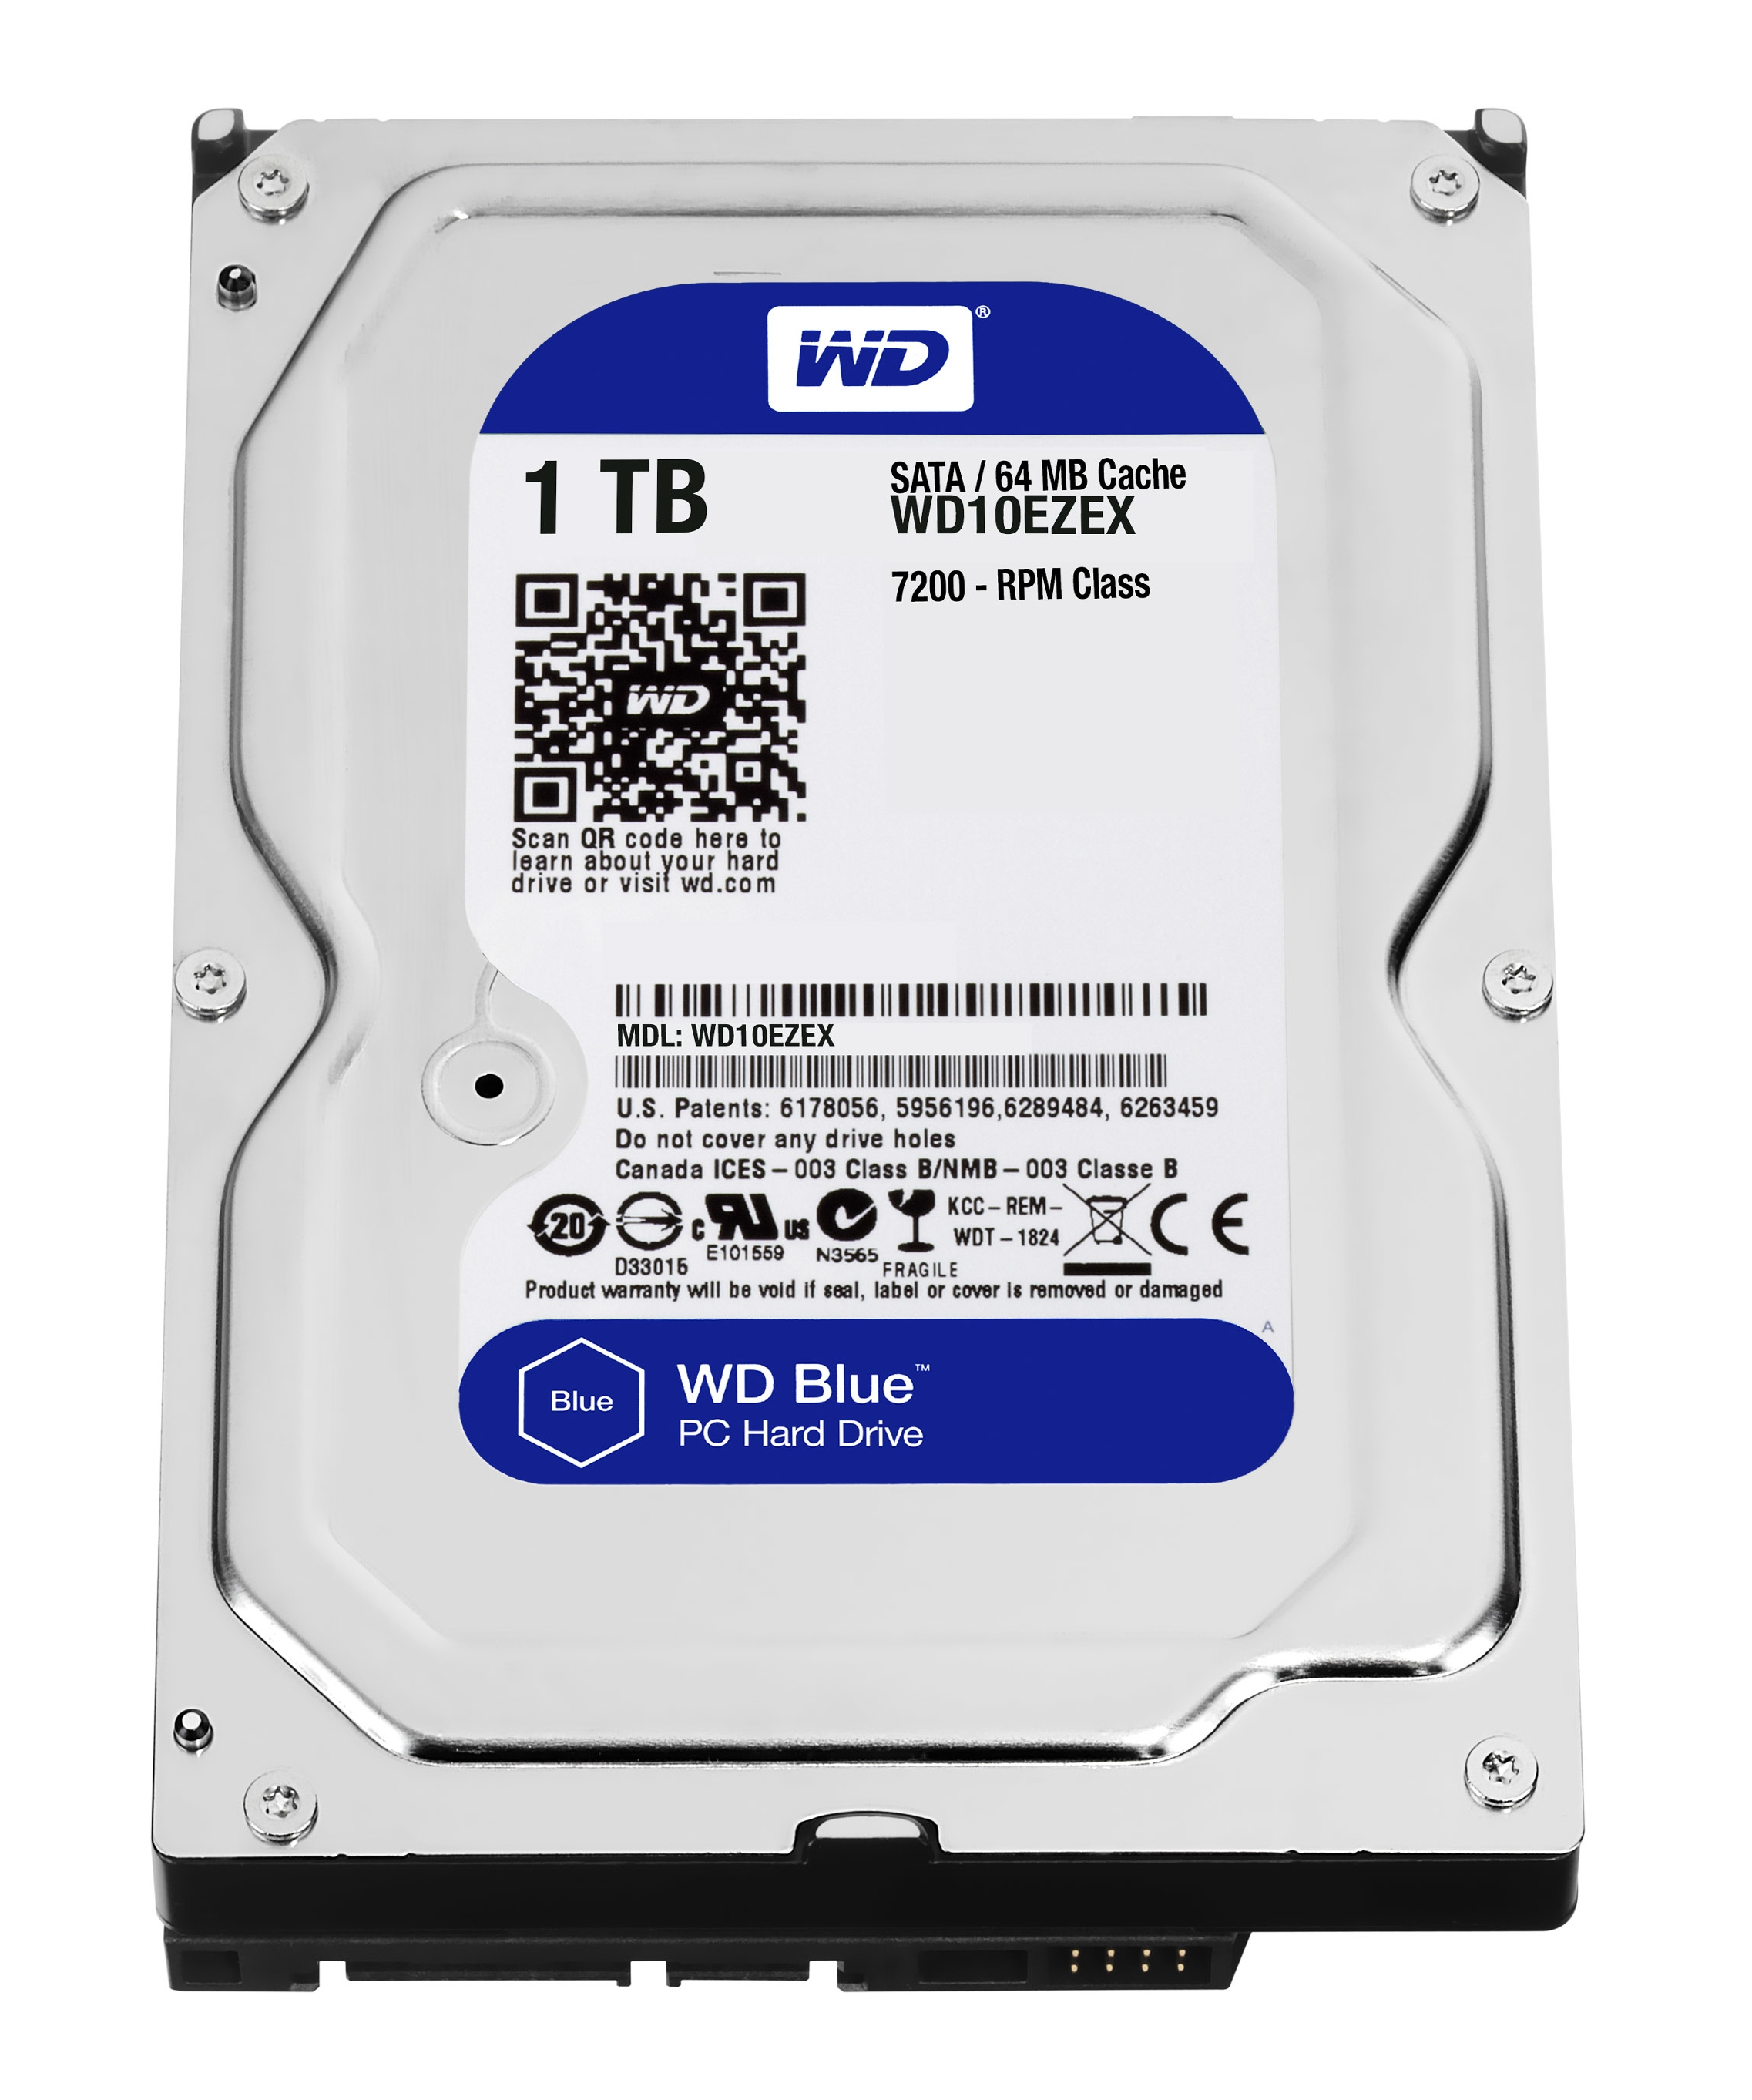 HD W.DIGITAL WD10EZEX 1TB 64MB 3.5 SATA